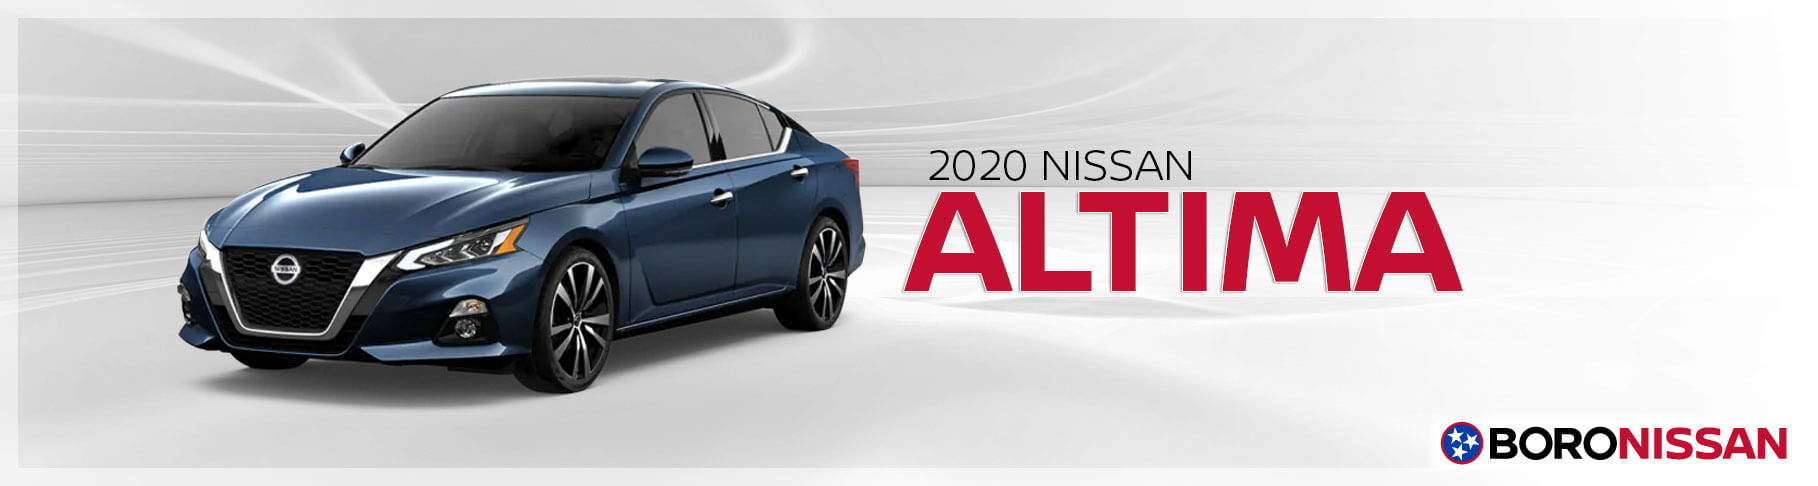 The 2020 Nissan Altima For Sale At Murfreesboro Nissan